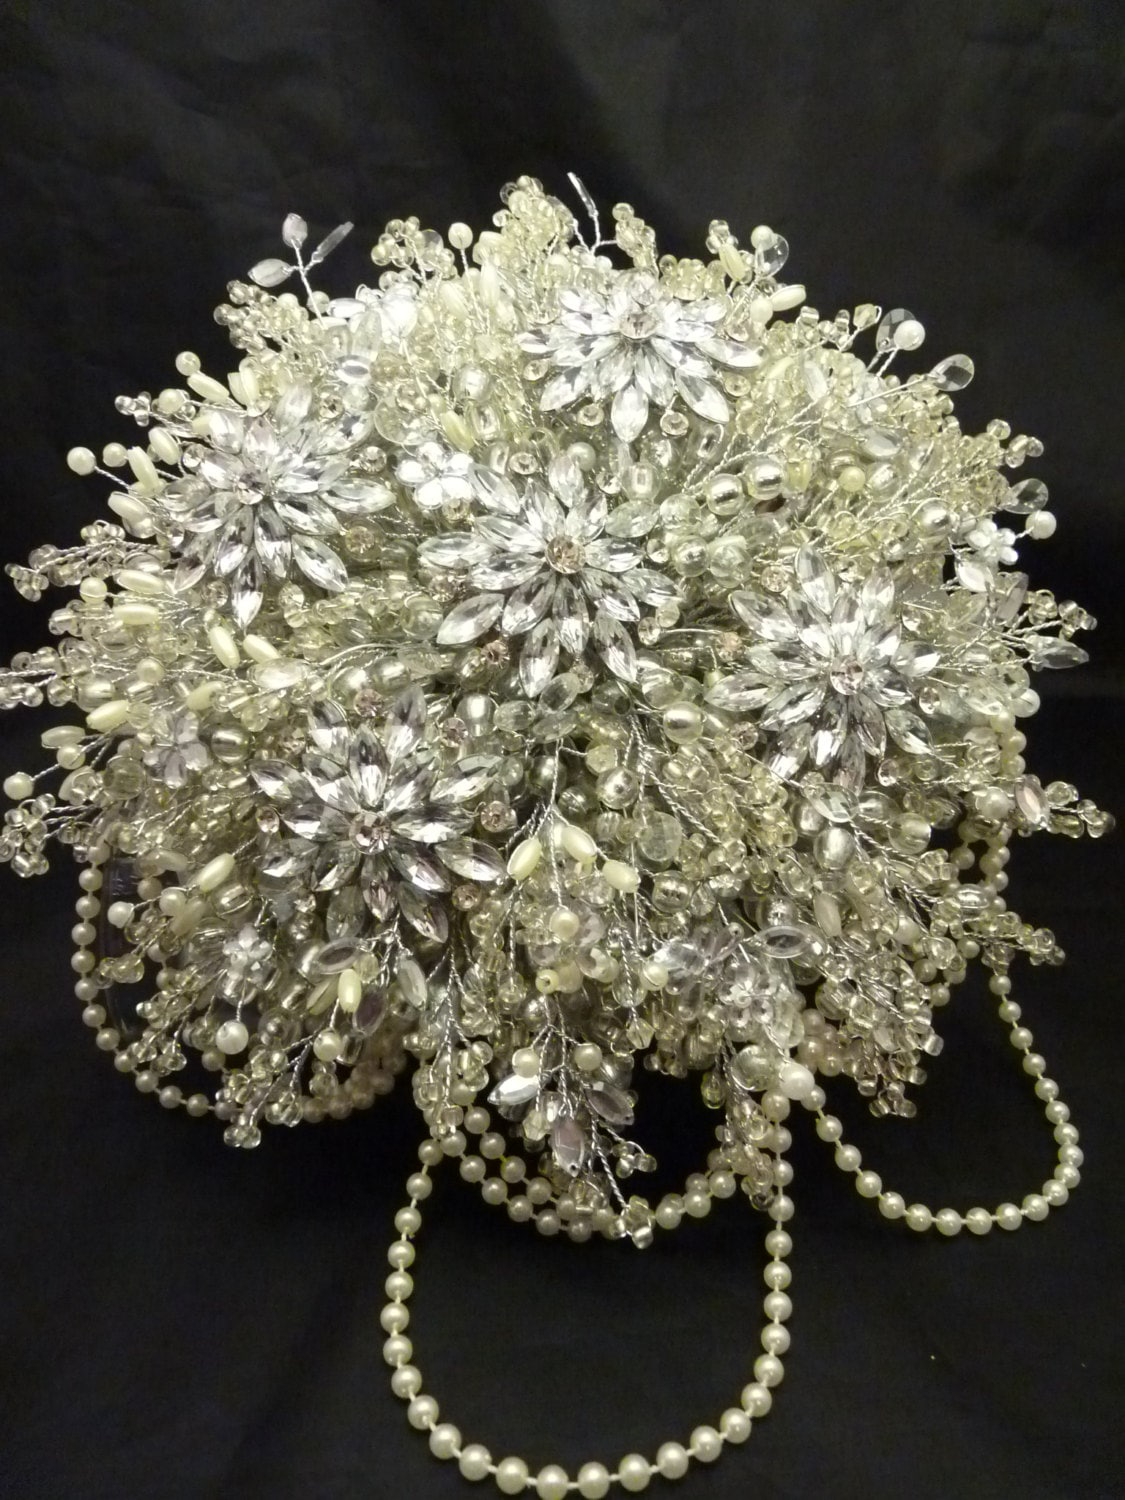 Great gatsby wedding bouquet with large flower brooch in ivory great gatsby wedding bouquet with large flower brooch in ivory 1920s style bouquet brooch bouquet silver bouquet beaded izmirmasajfo